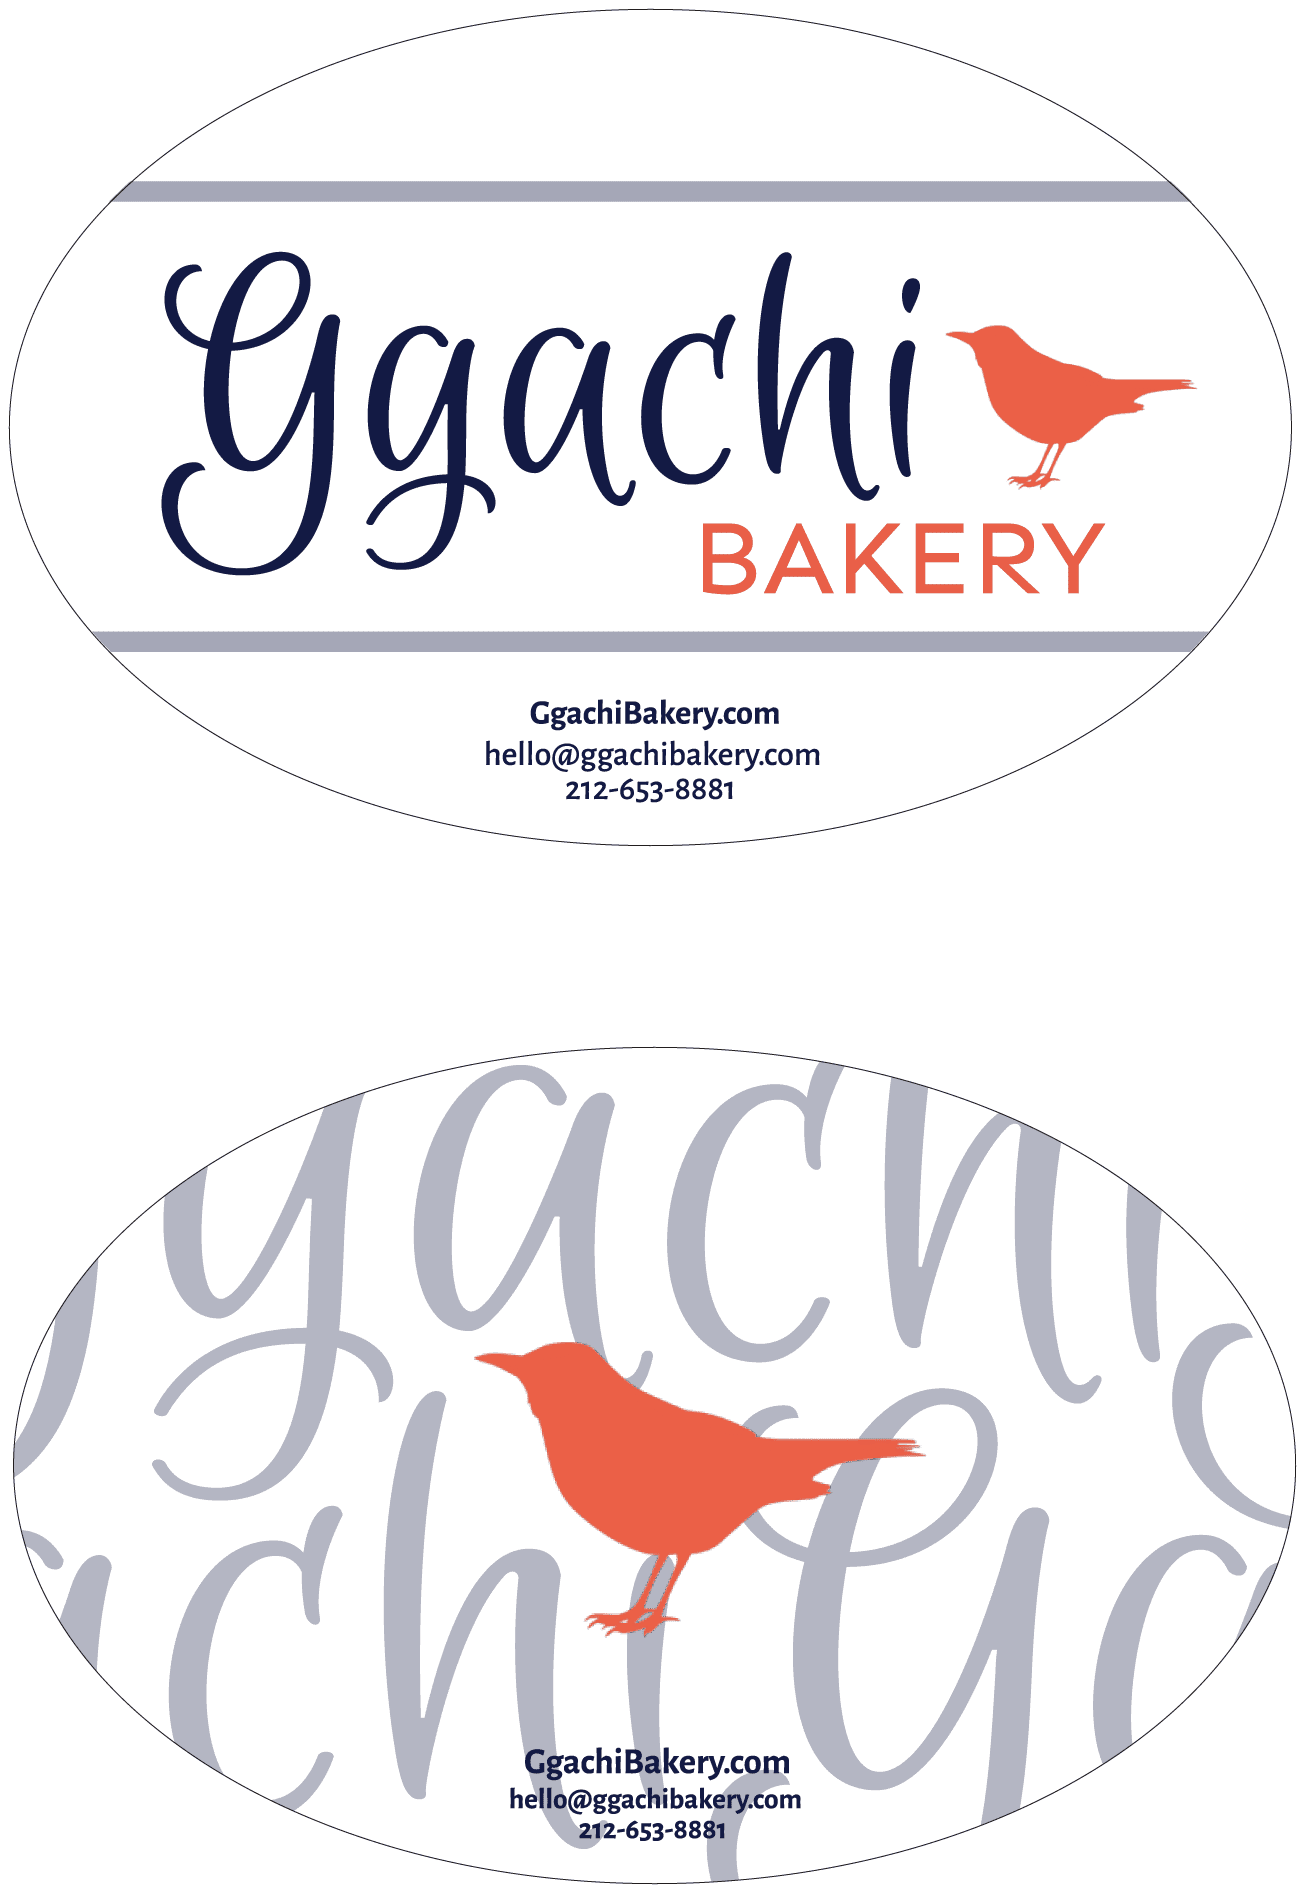 Ggachi-Sticker-Labels-2